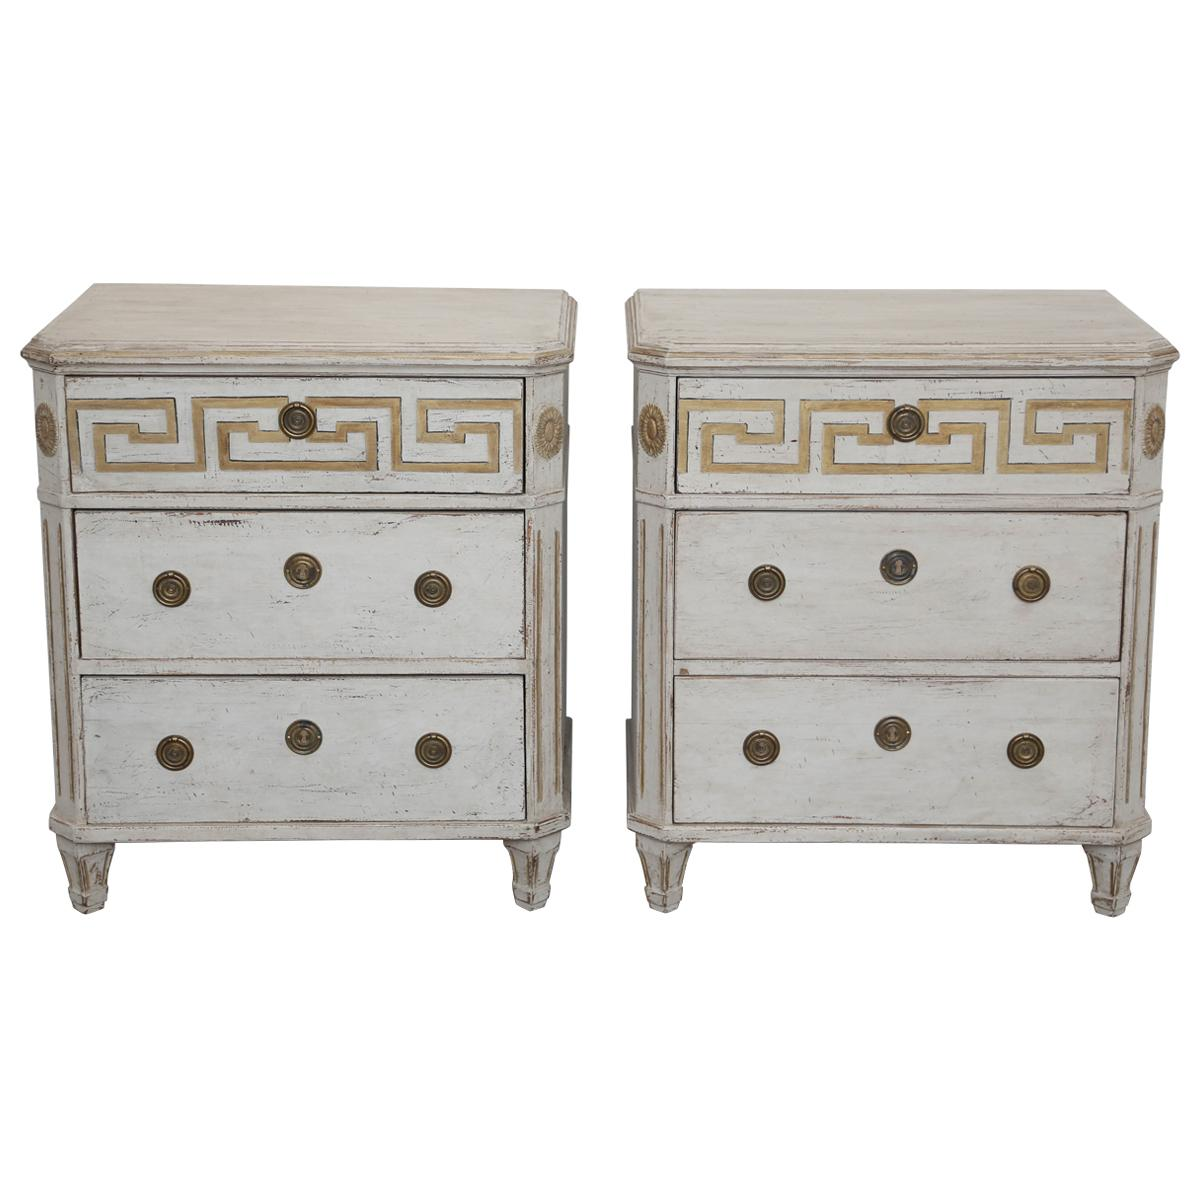 Attirant Pair Of Antique Swedish Gustavian Style Painted Chests With Greek Key For  Sale